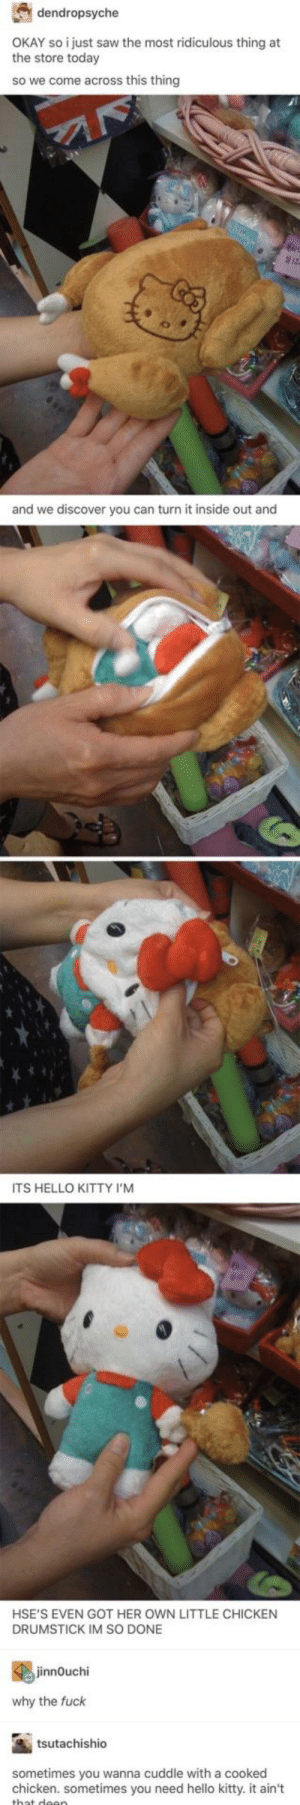 Hello, Kitty!: dendropsyche  OKAY so i just saw the most ridiculous thing at  the store today  so we come across this thingg  and we discover you can turn it inside out and  ITS HELLO KITTY I'M  HSE'S EVEN GOT HER OWN LITTLE CHICKEN  DRUMSTICK IM SO DONE  jinnOuchi  why the fuck  tsutachishio  sometimes you wanna cuddle with a cooked  chicken. sometimes you need hello kitty. it ain't  wllo kittyit an Hello, Kitty!